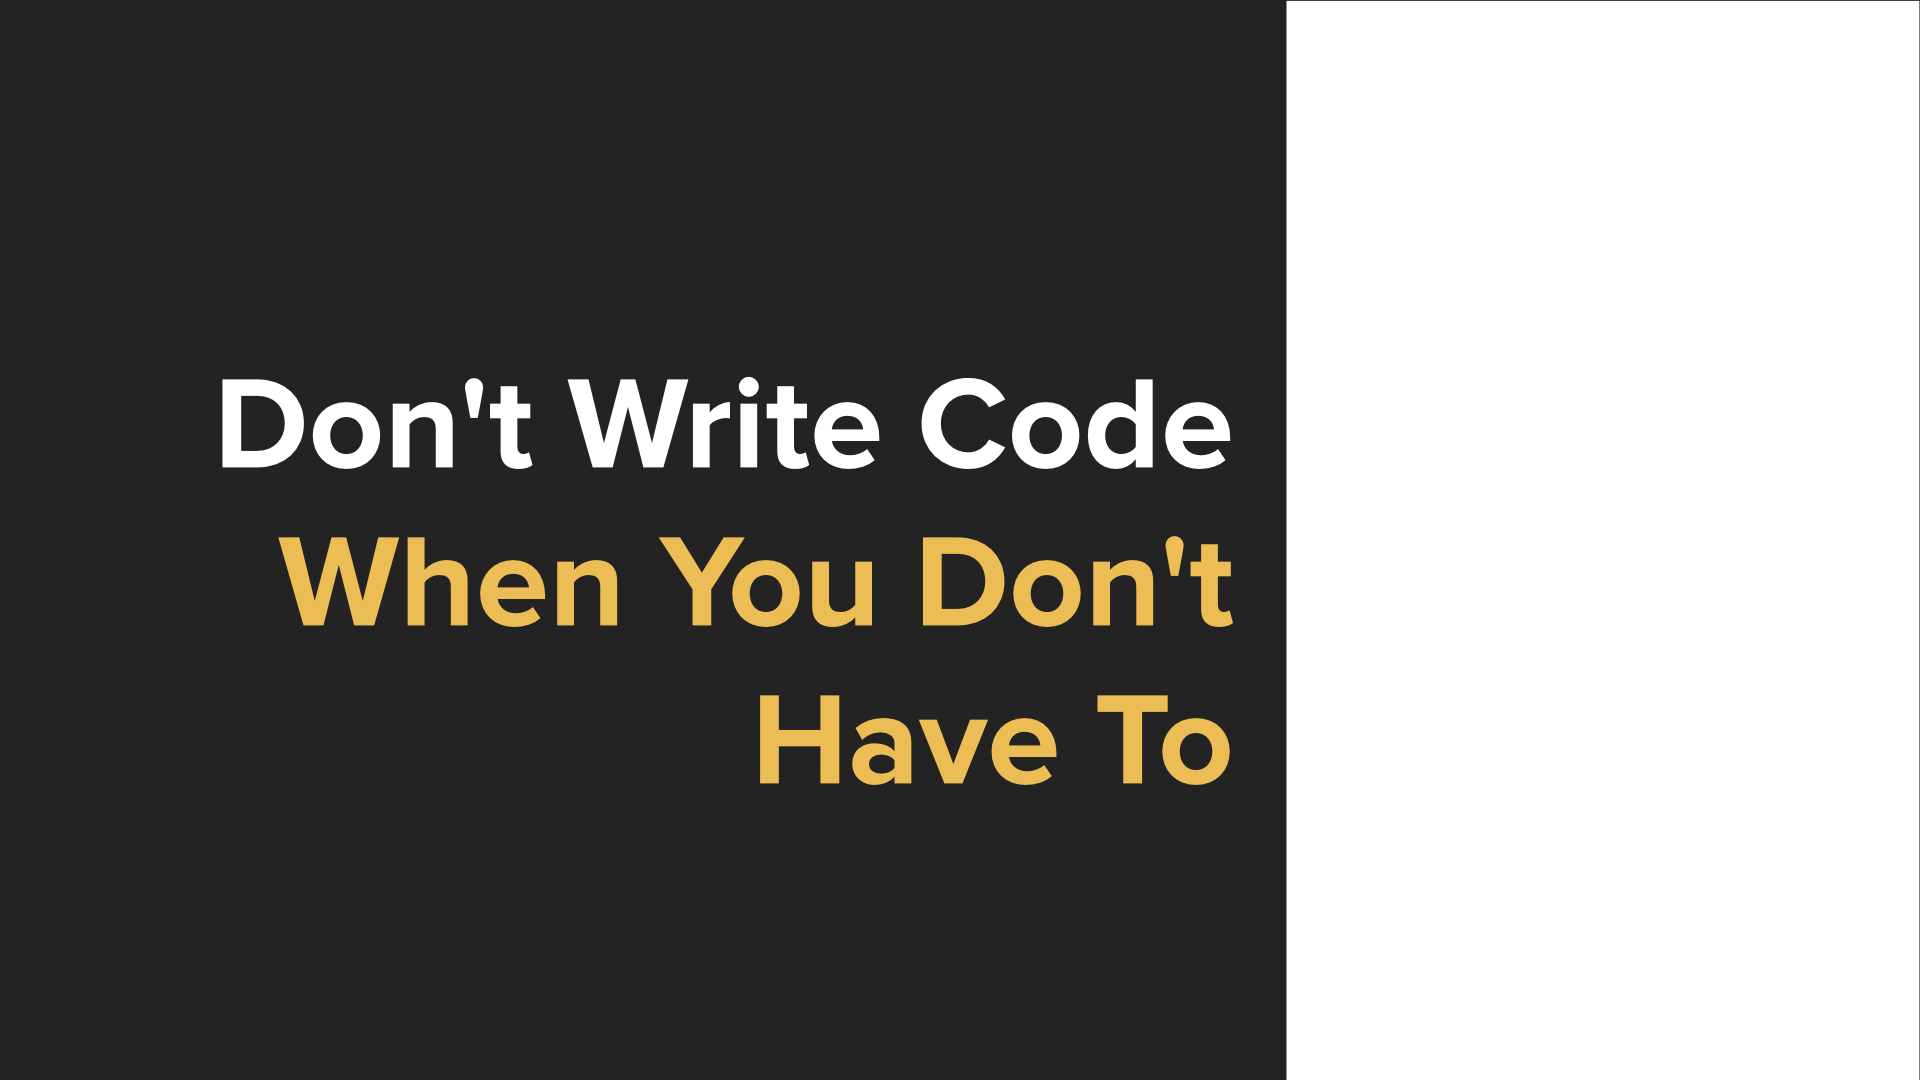 Don't Write Code When You Don't Have To